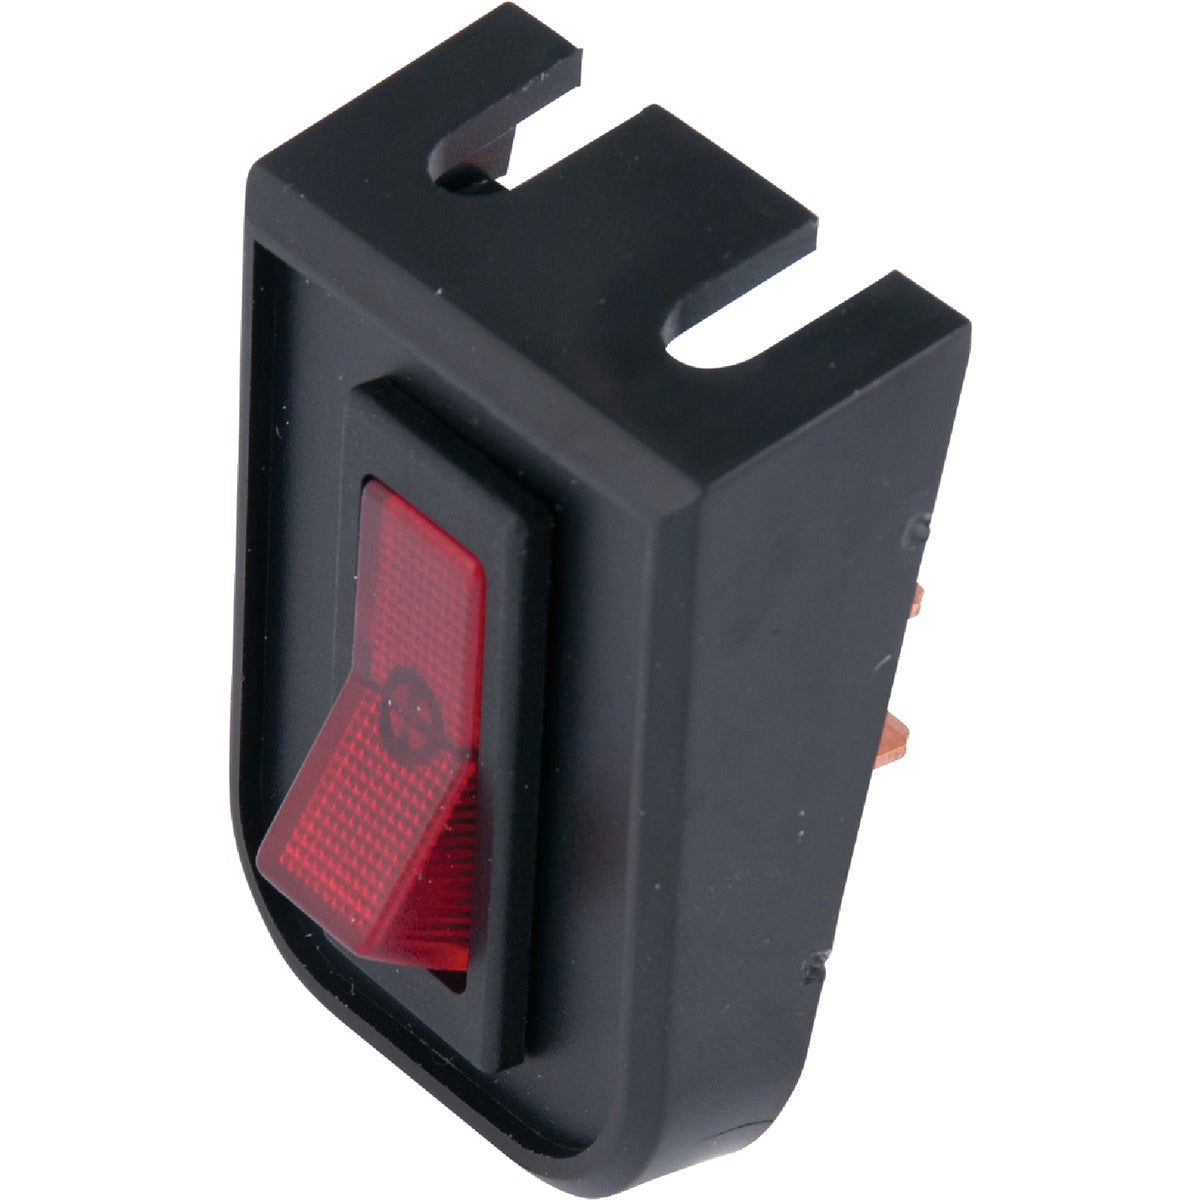 RED ROCKER SWITCH - 41310 by G B Electrical Inc